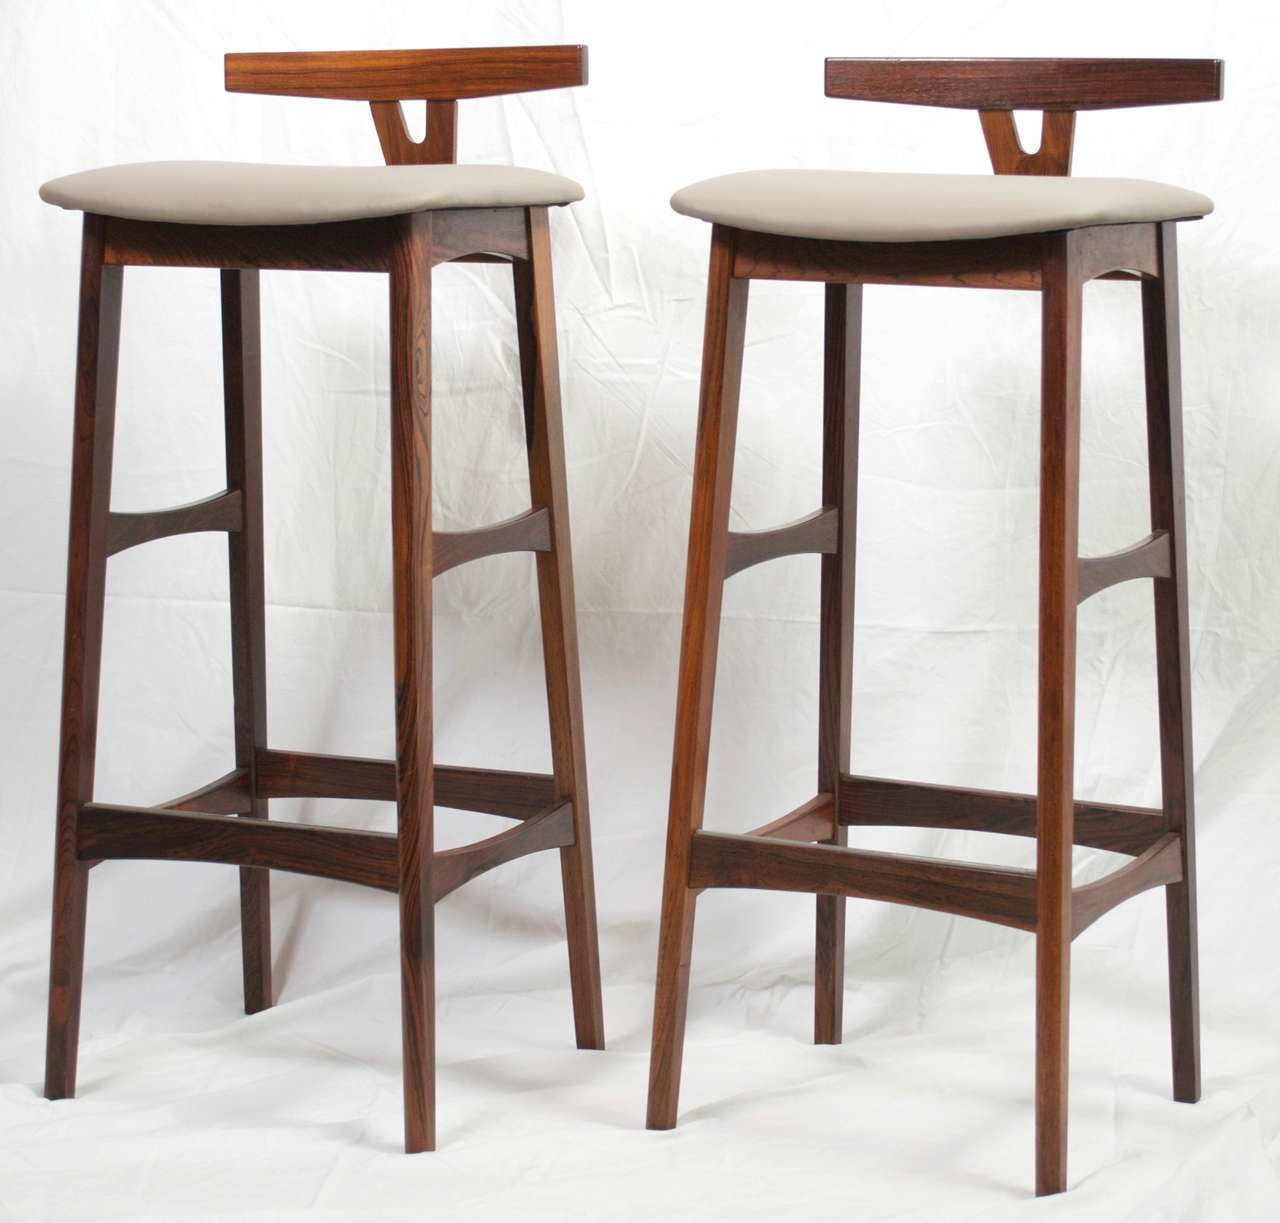 pair of rosewood danish modern barstools by dyrlund at stdibs - pair of rosewood danish modern barstools by dyrlund